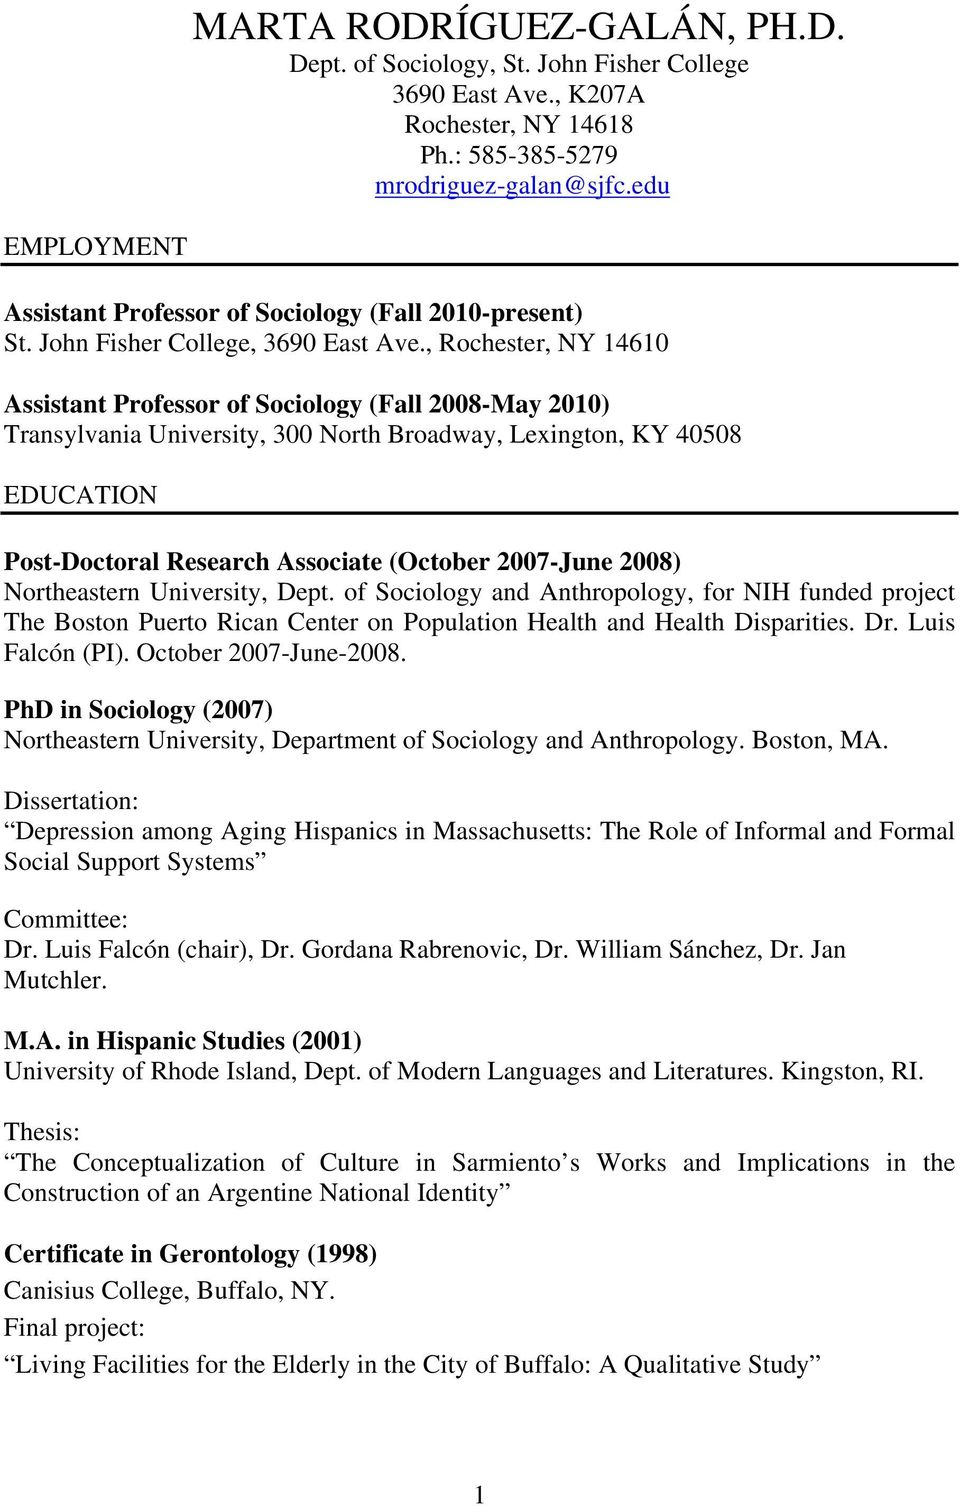 , Rochester, NY 14610 Assistant Professor of Sociology (Fall 2008-May 2010) Transylvania University, 300 North Broadway, Lexington, KY 40508 EDUCATION Post-Doctoral Research Associate (October